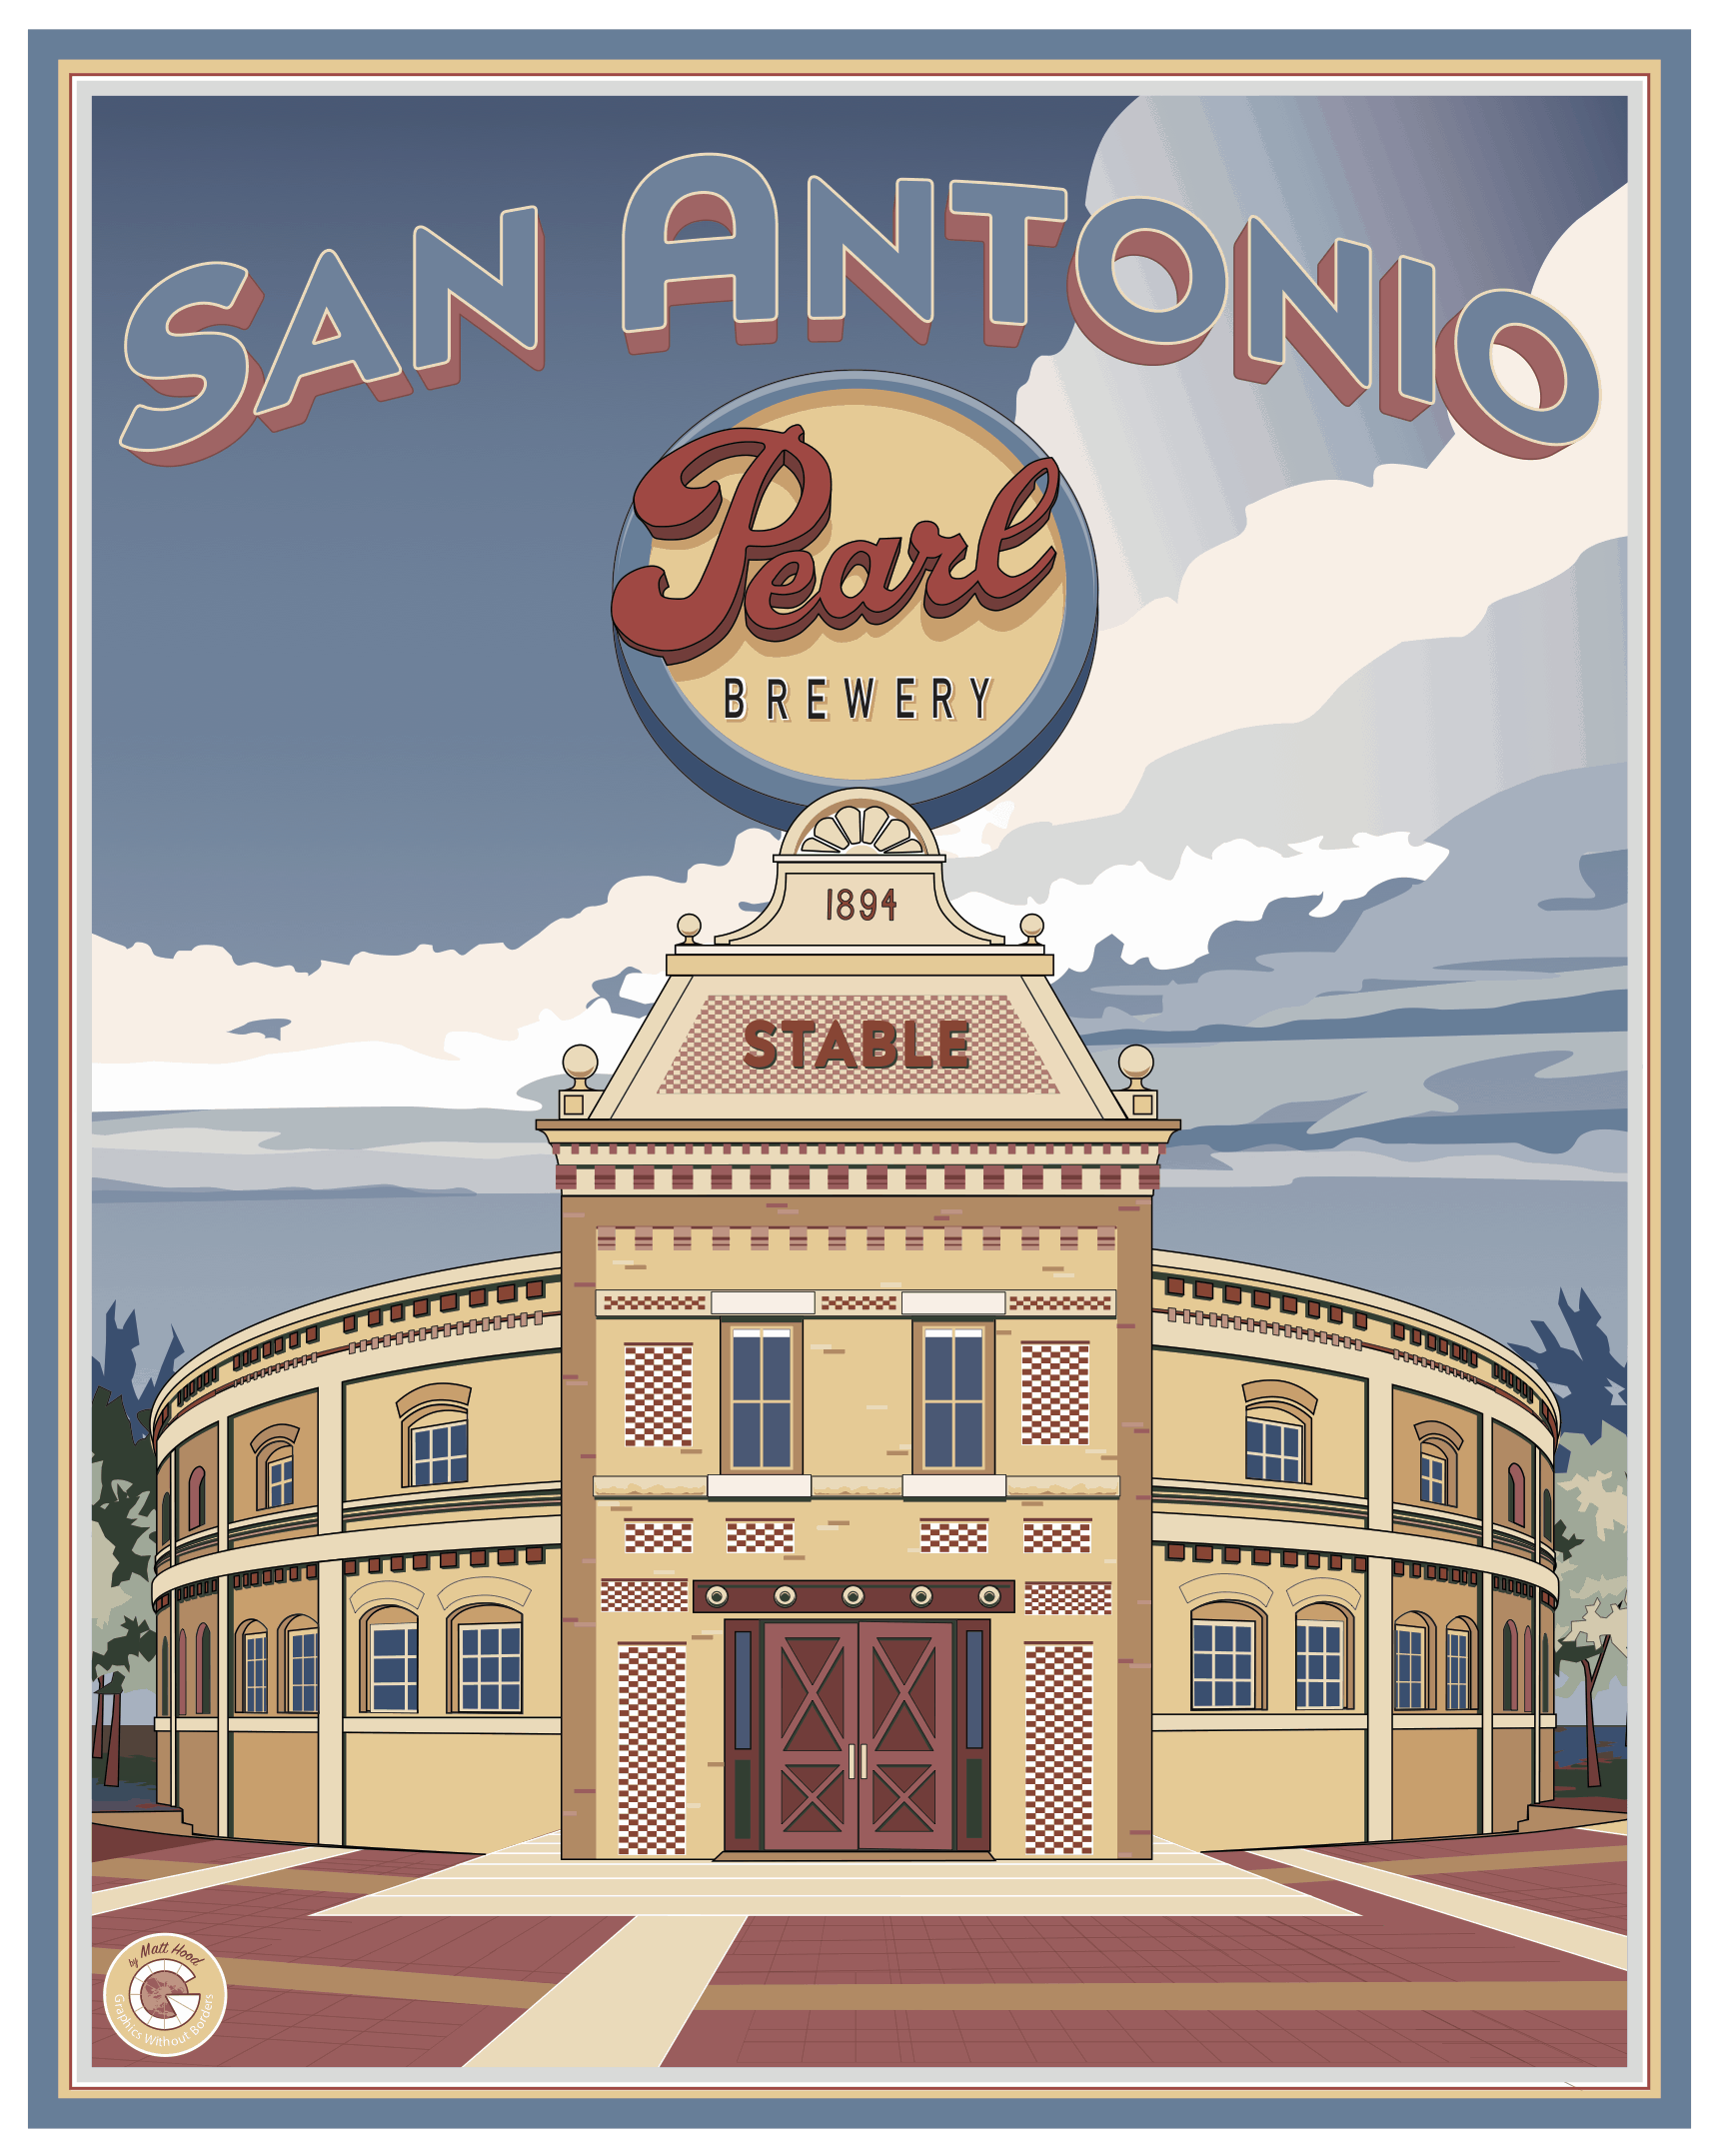 Vintage-style travel poster featuring San Antonio's Pearl Brewery